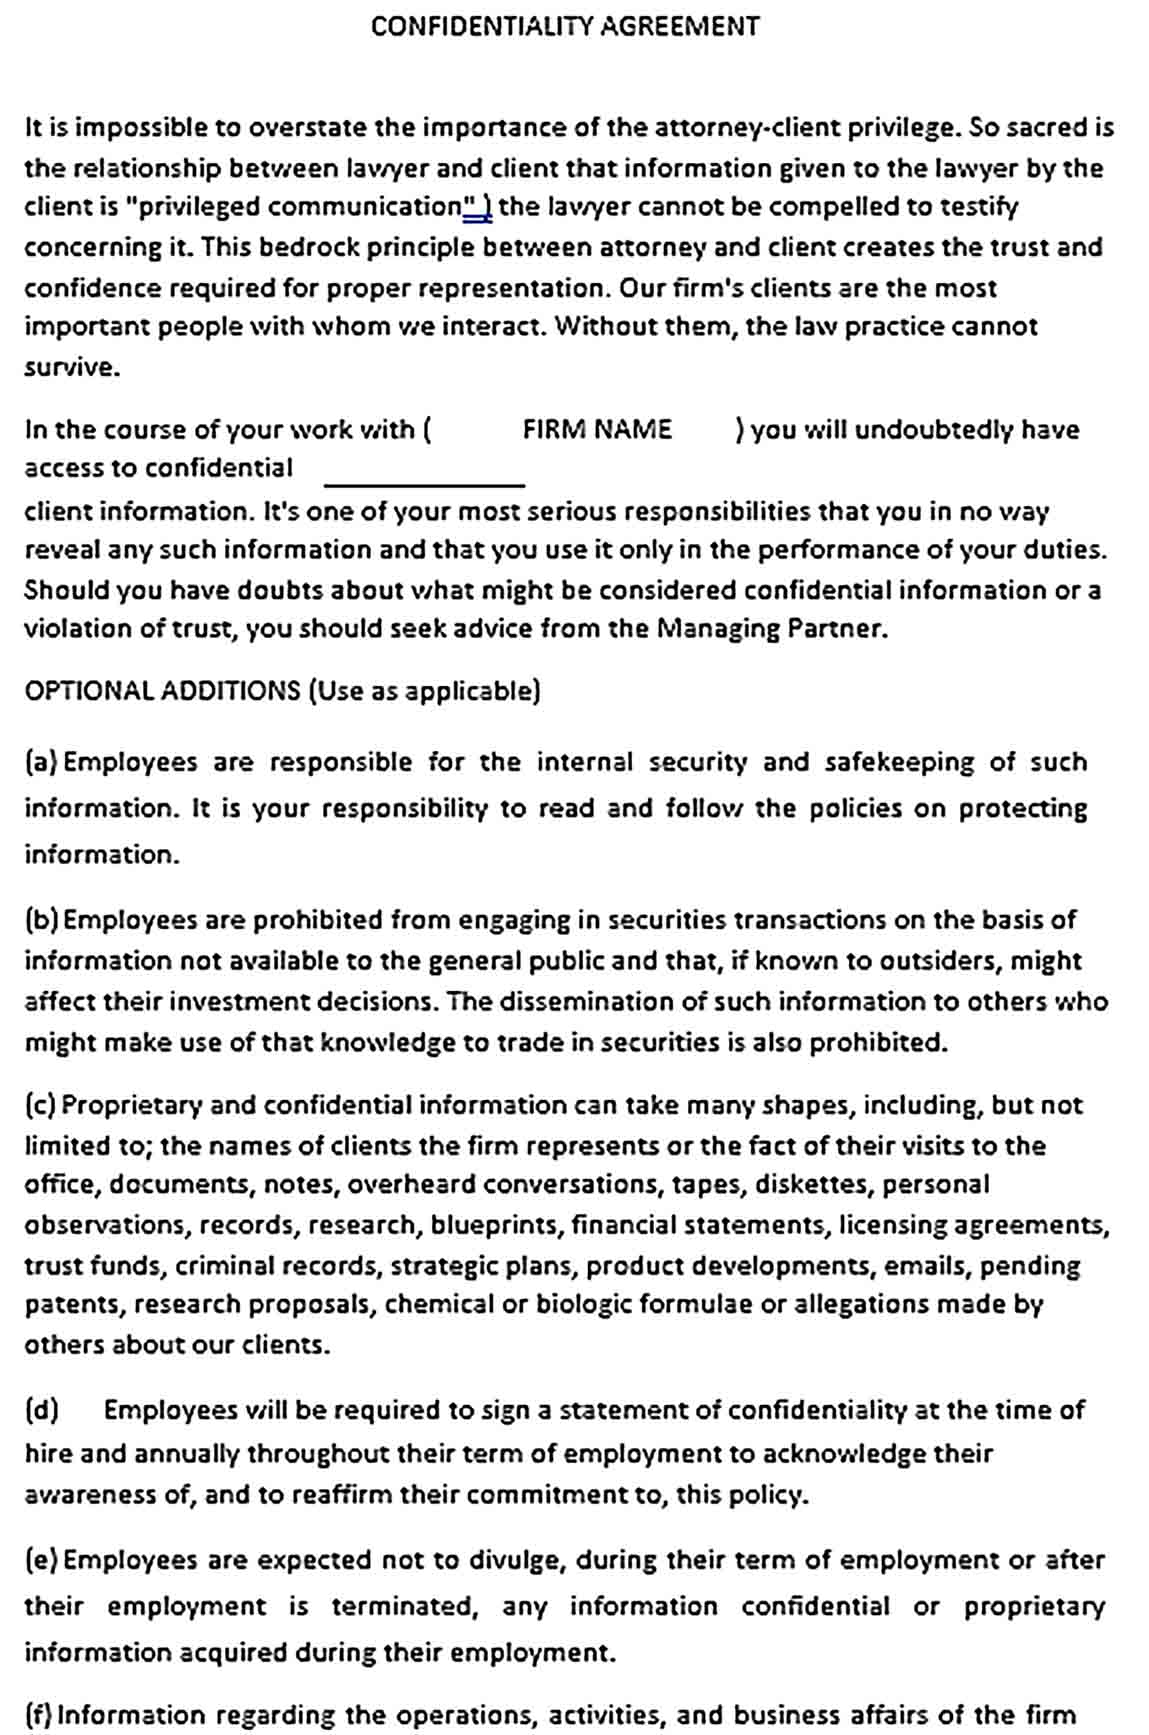 Sample Personal Assistant Confidentiality Agreement Form